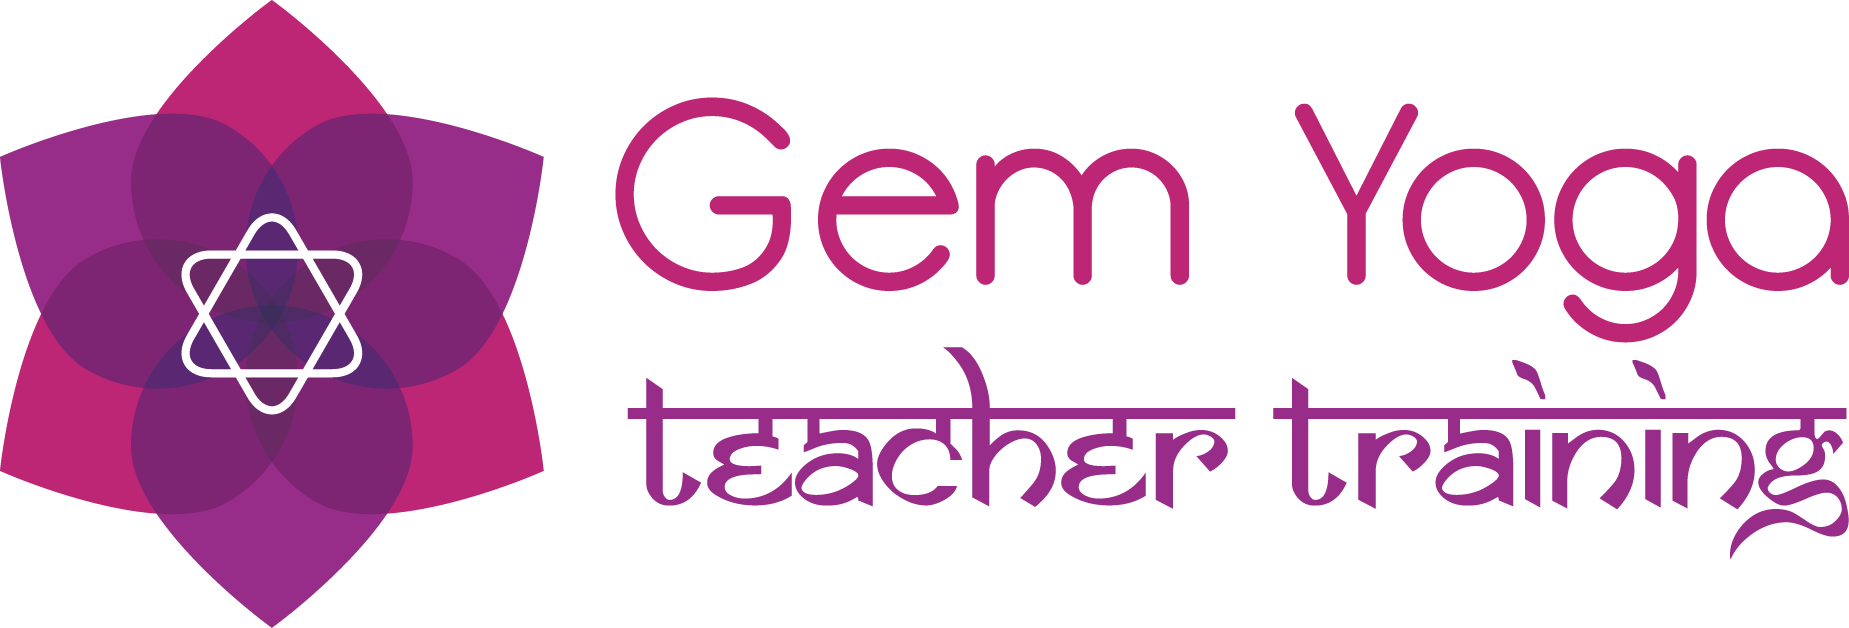 Gem Yoga Teacher Training